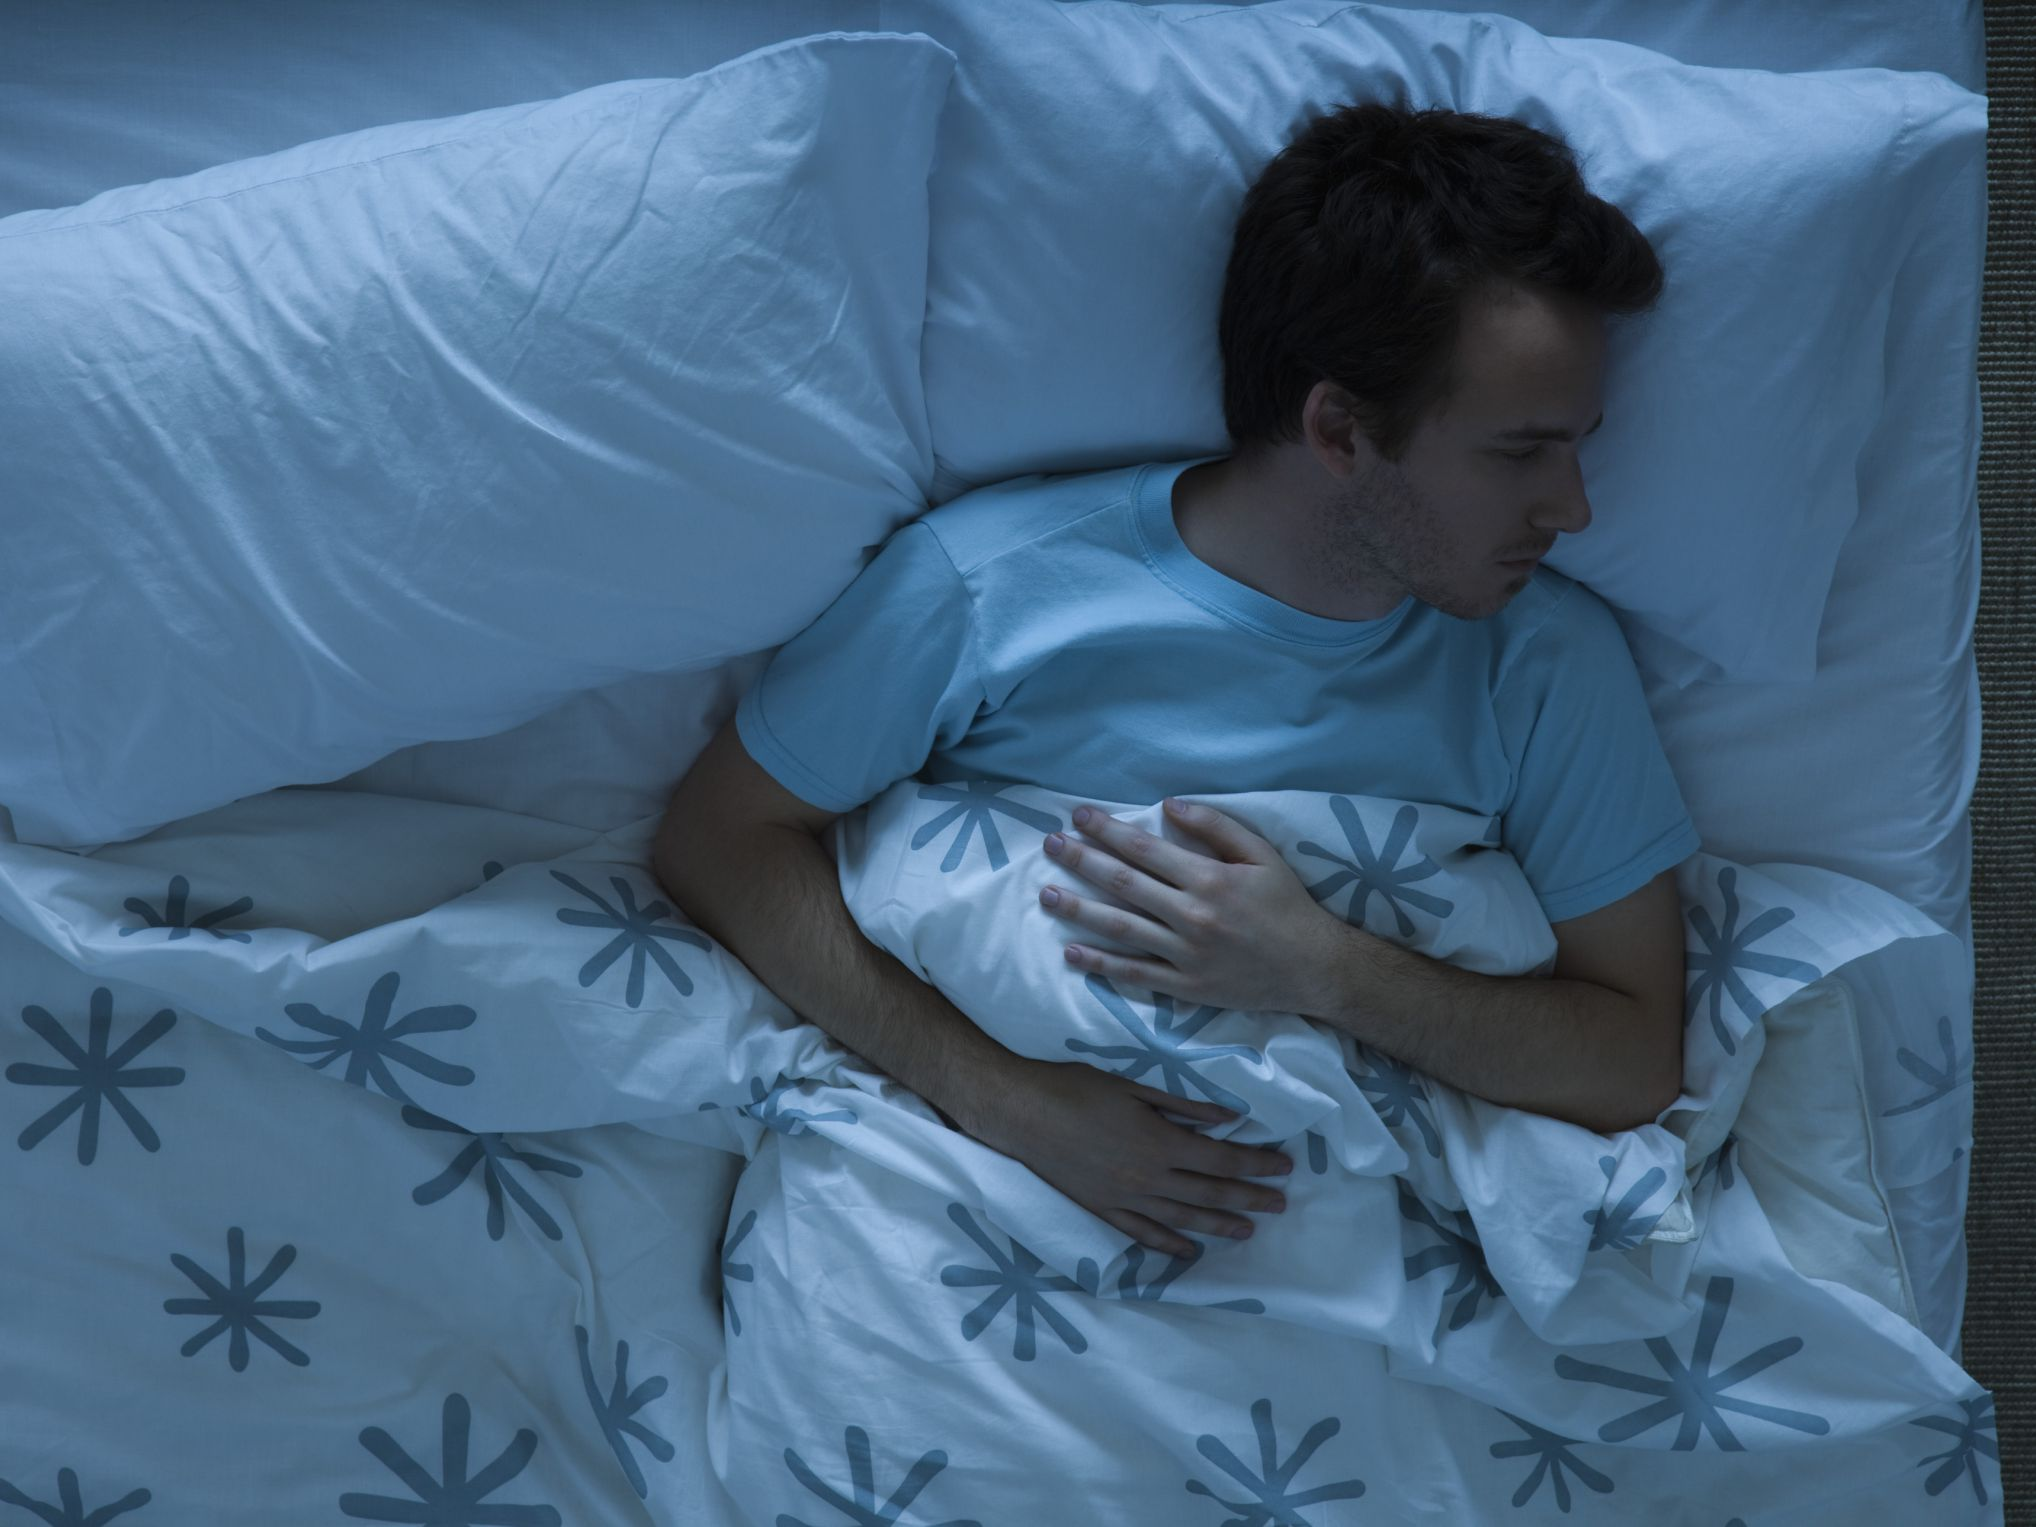 Relationship Between IBS and Sleep Disturbances